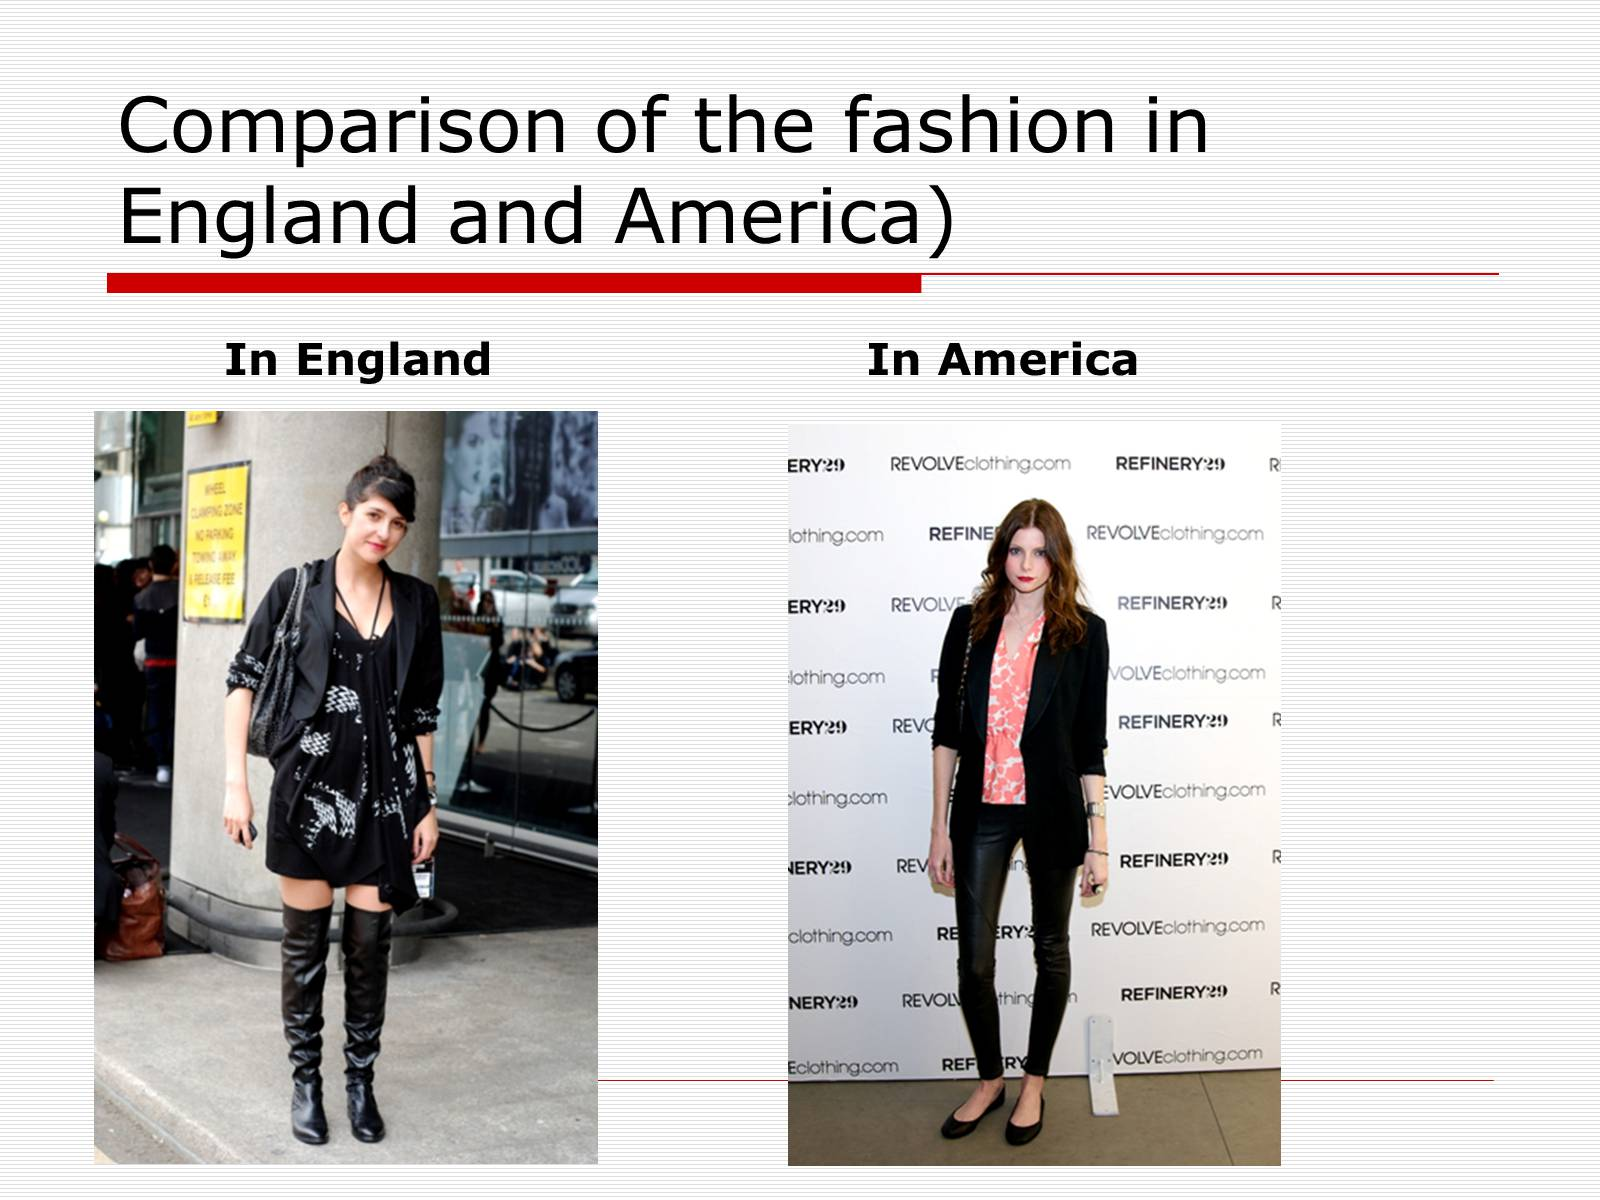 Презентація на тему «Comparison of the fashion in England and America» - Слайд #9